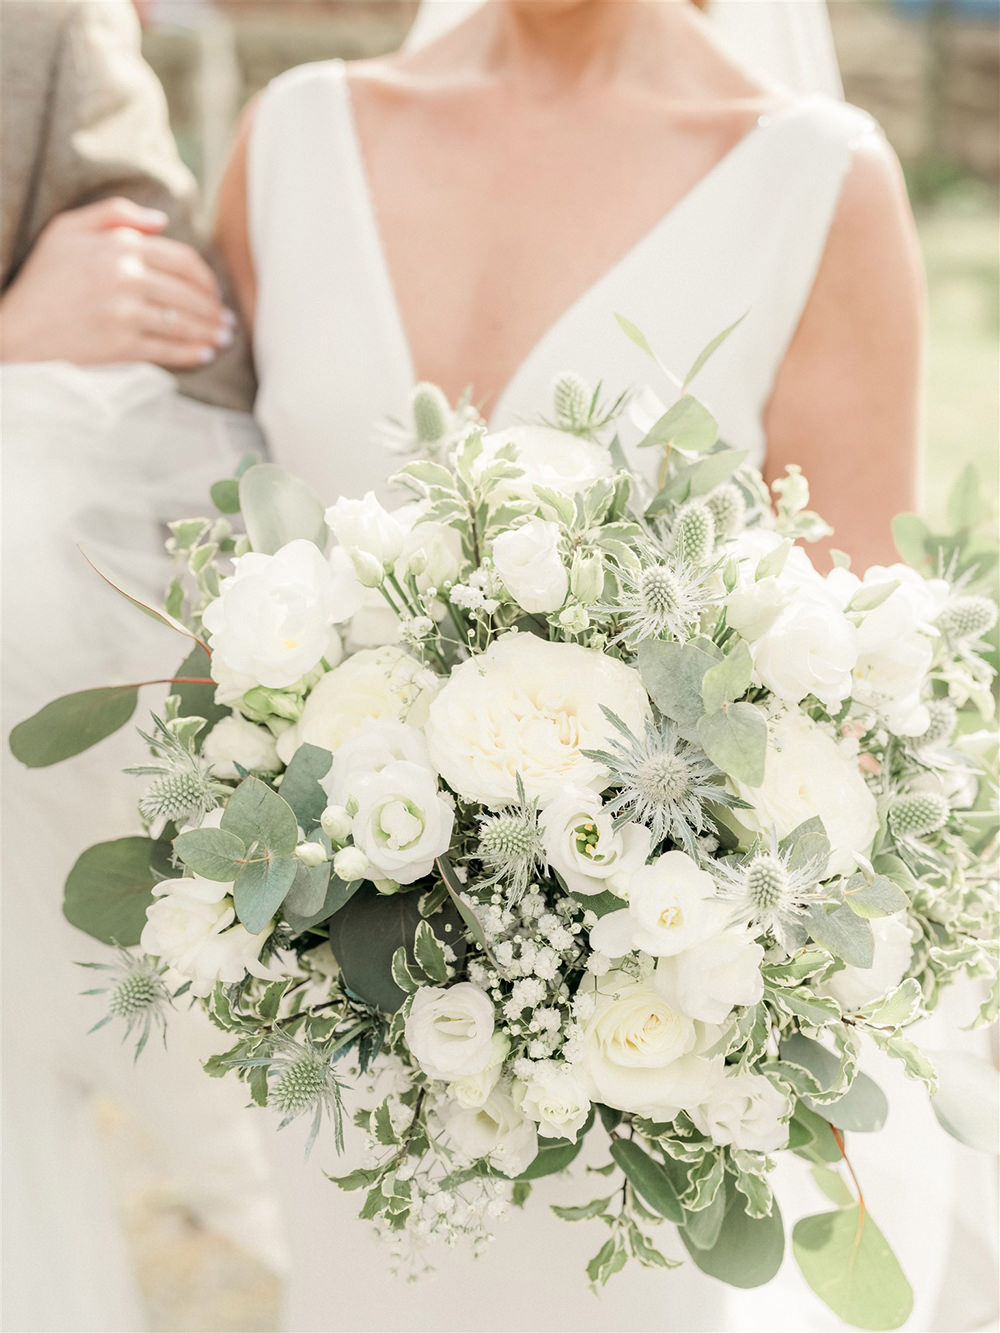 Bouquet Flowers Bride Bridal Thistle Rose Eucalyptus Lockdown Wedding Carn Patrick Photography